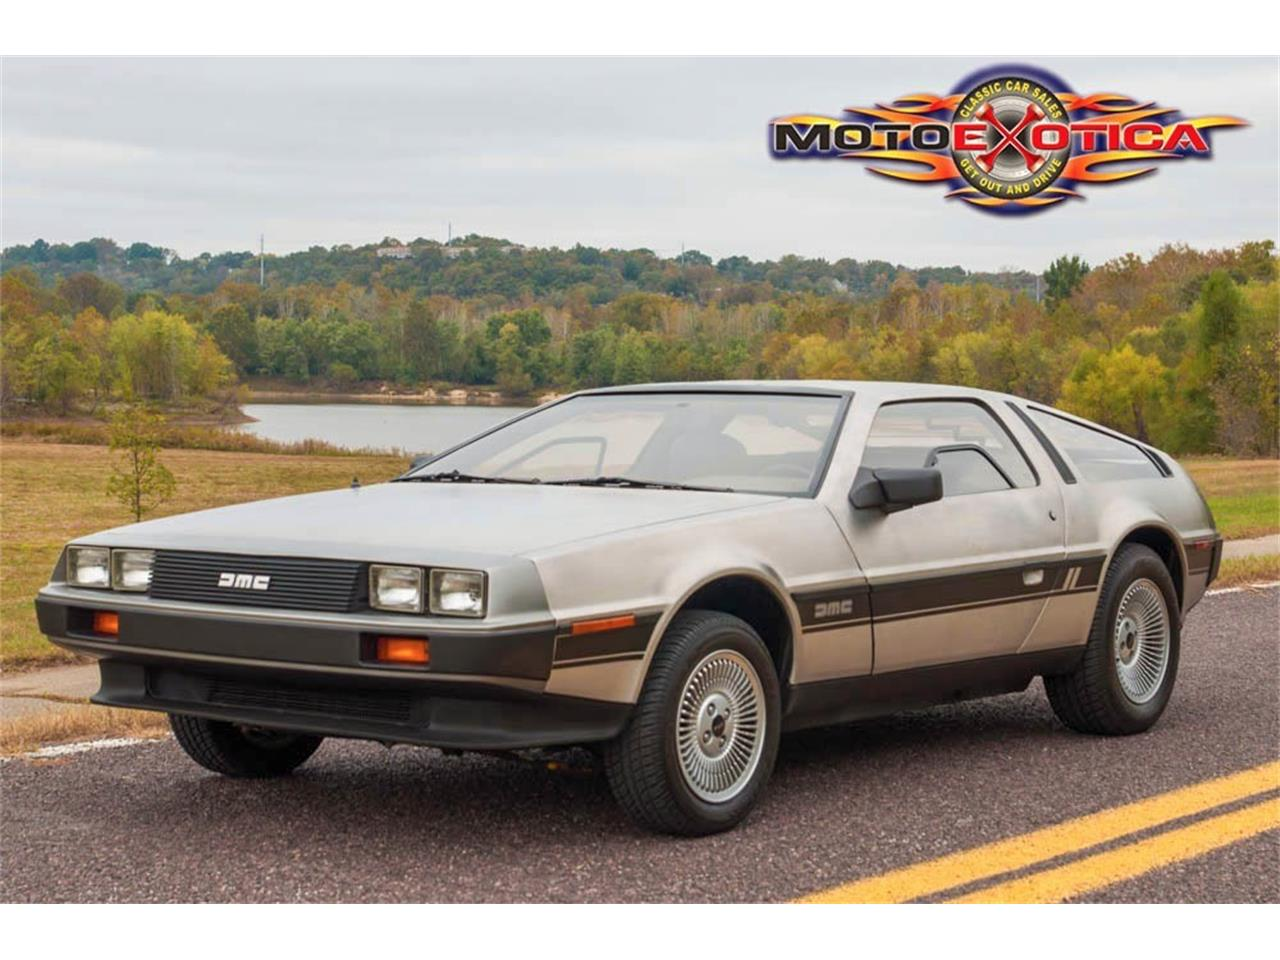 Large Picture of 1981 DeLorean DMC-12 located in St. Louis Missouri Offered by MotoeXotica Classic Cars - JPXR